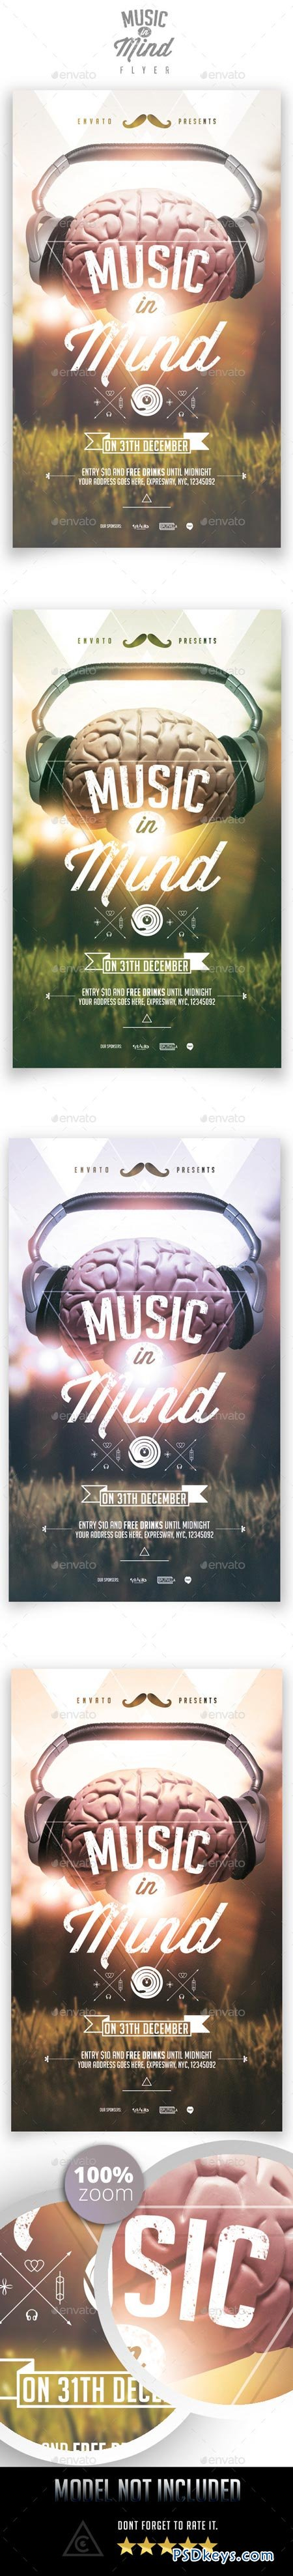 Music in Mind Flyer Template 9020350